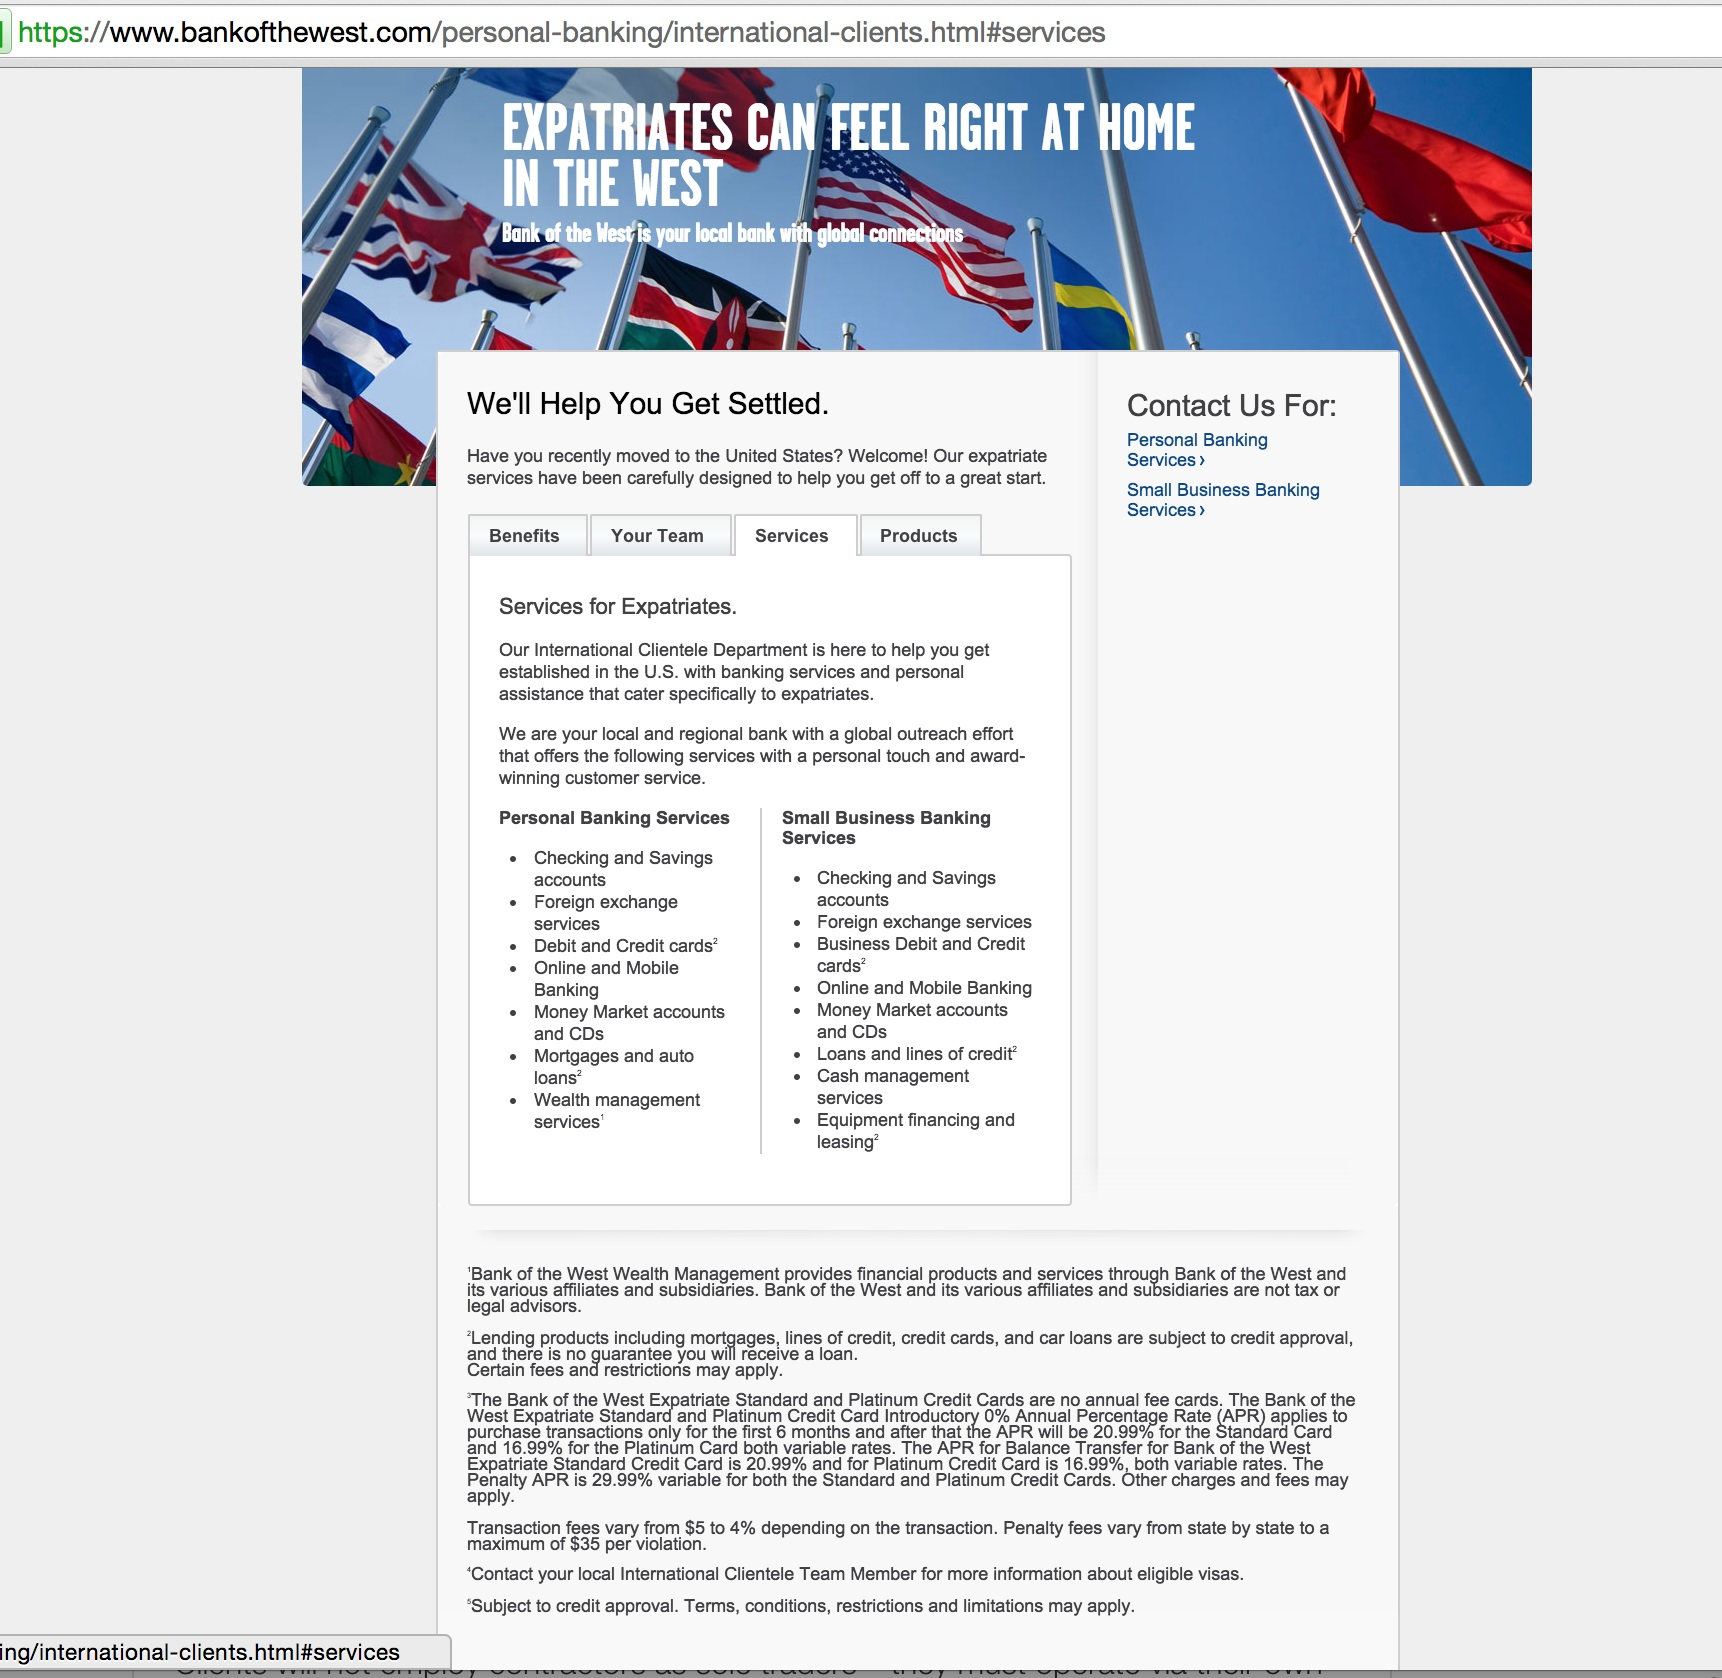 Bank of the West - International Clientele Services tab